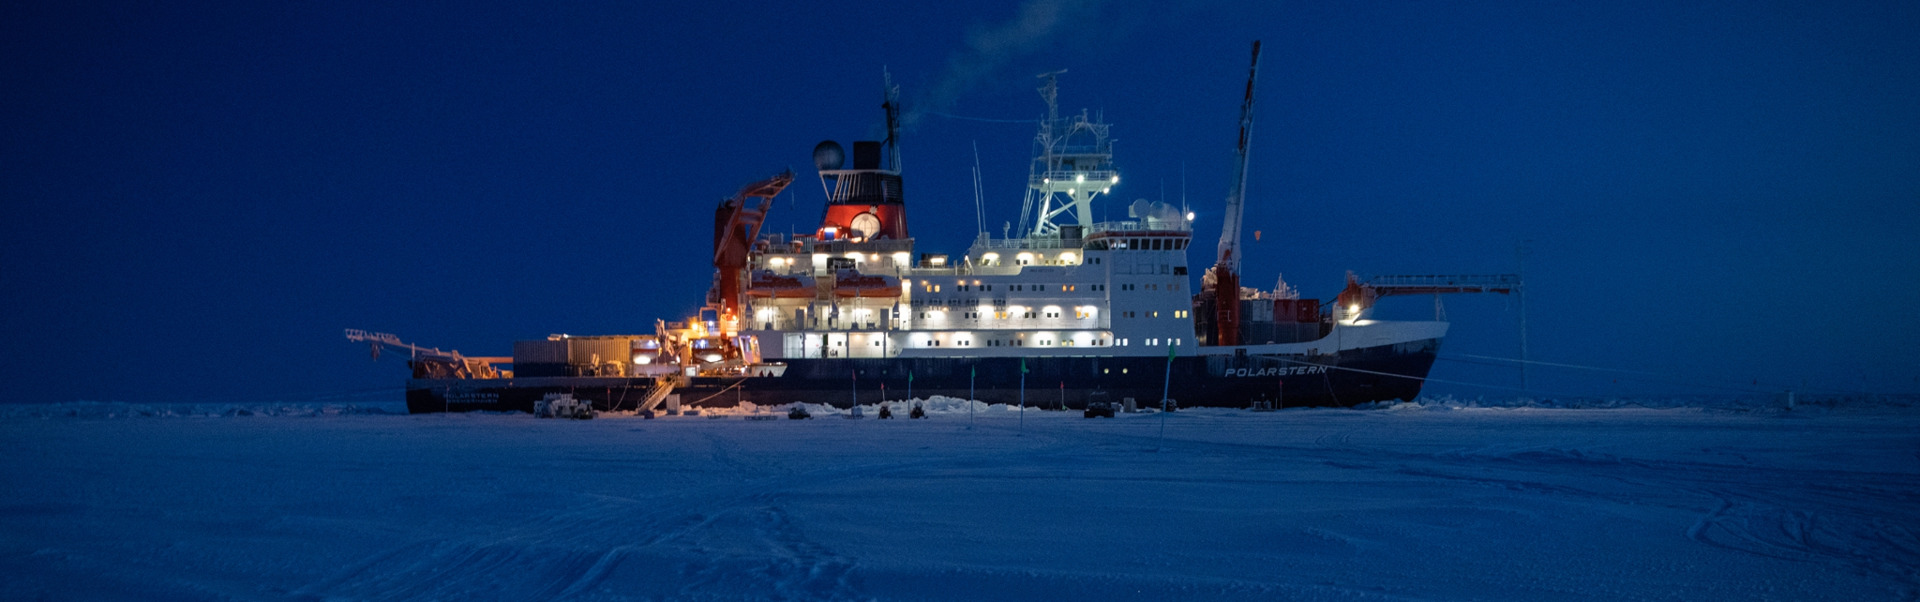 Research expedition to the polar ice cap